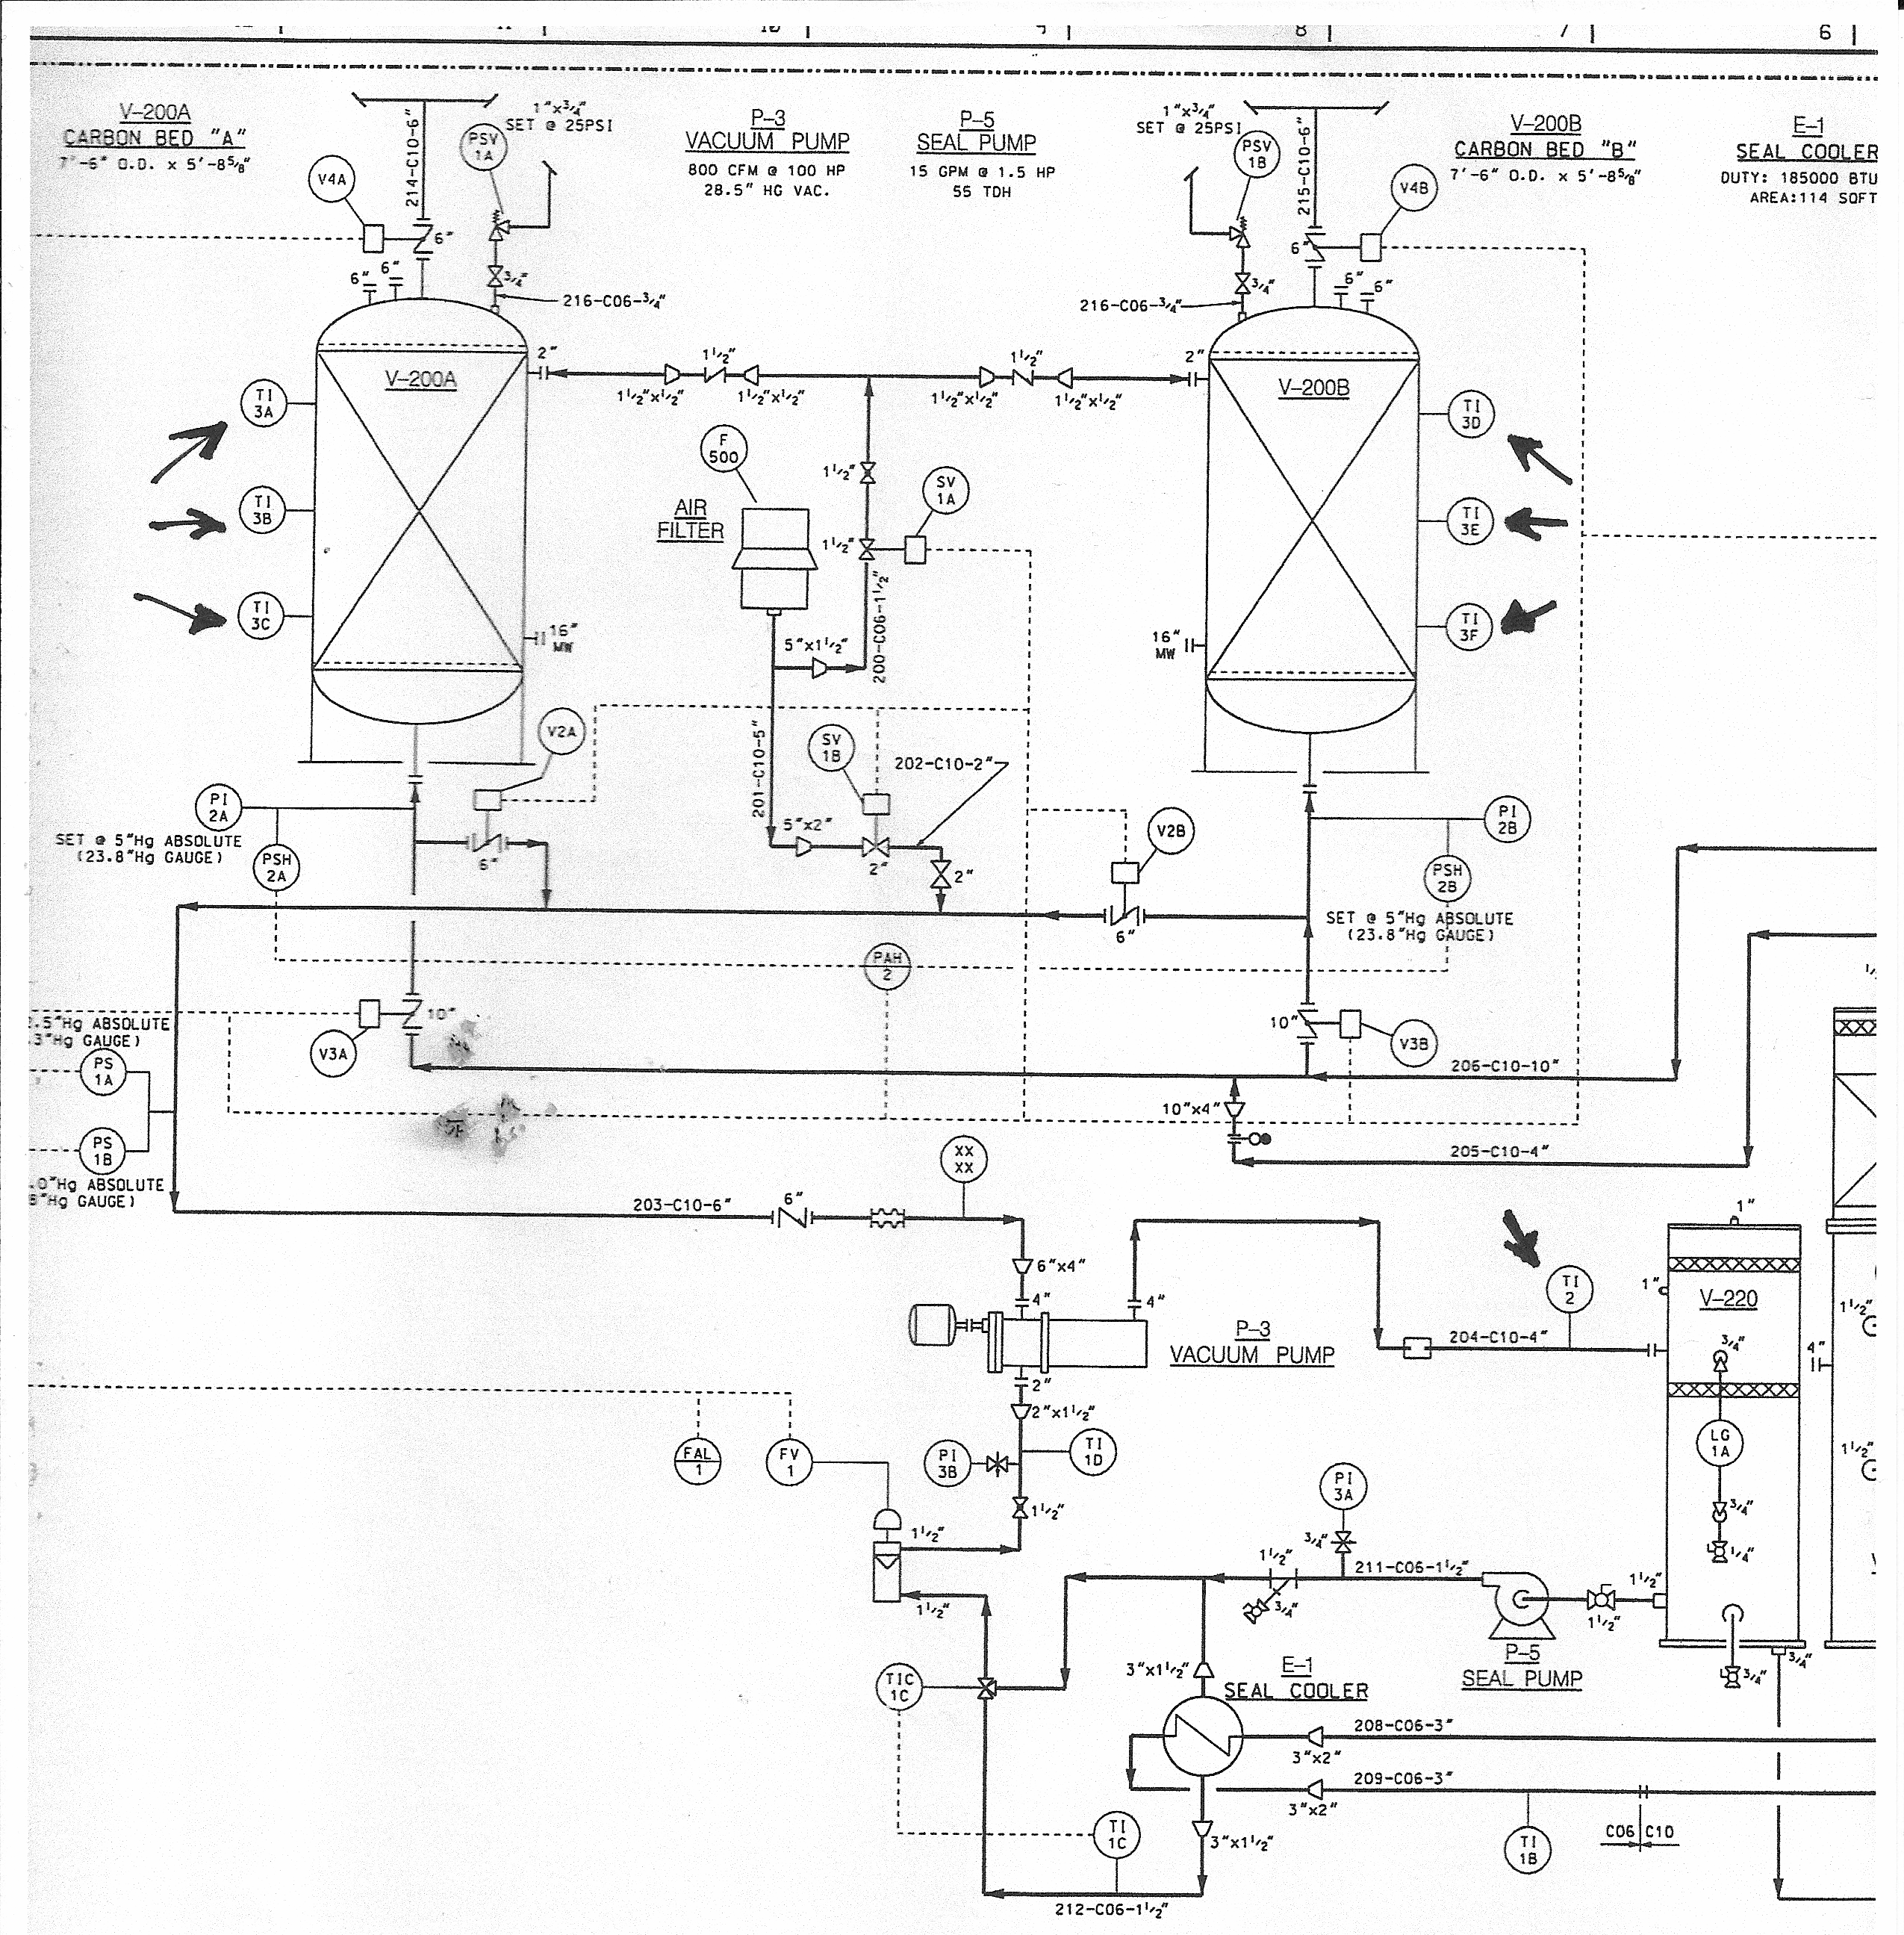 Fittings Pid Symbol likewise Pid Symbols Control Valve Assmbly Actuators also P Id Symbols Legend additionally Piping Schematic Valve Symbols further Pid Piping Instrumentation Data Not Drawing. on process instrumentation symbols